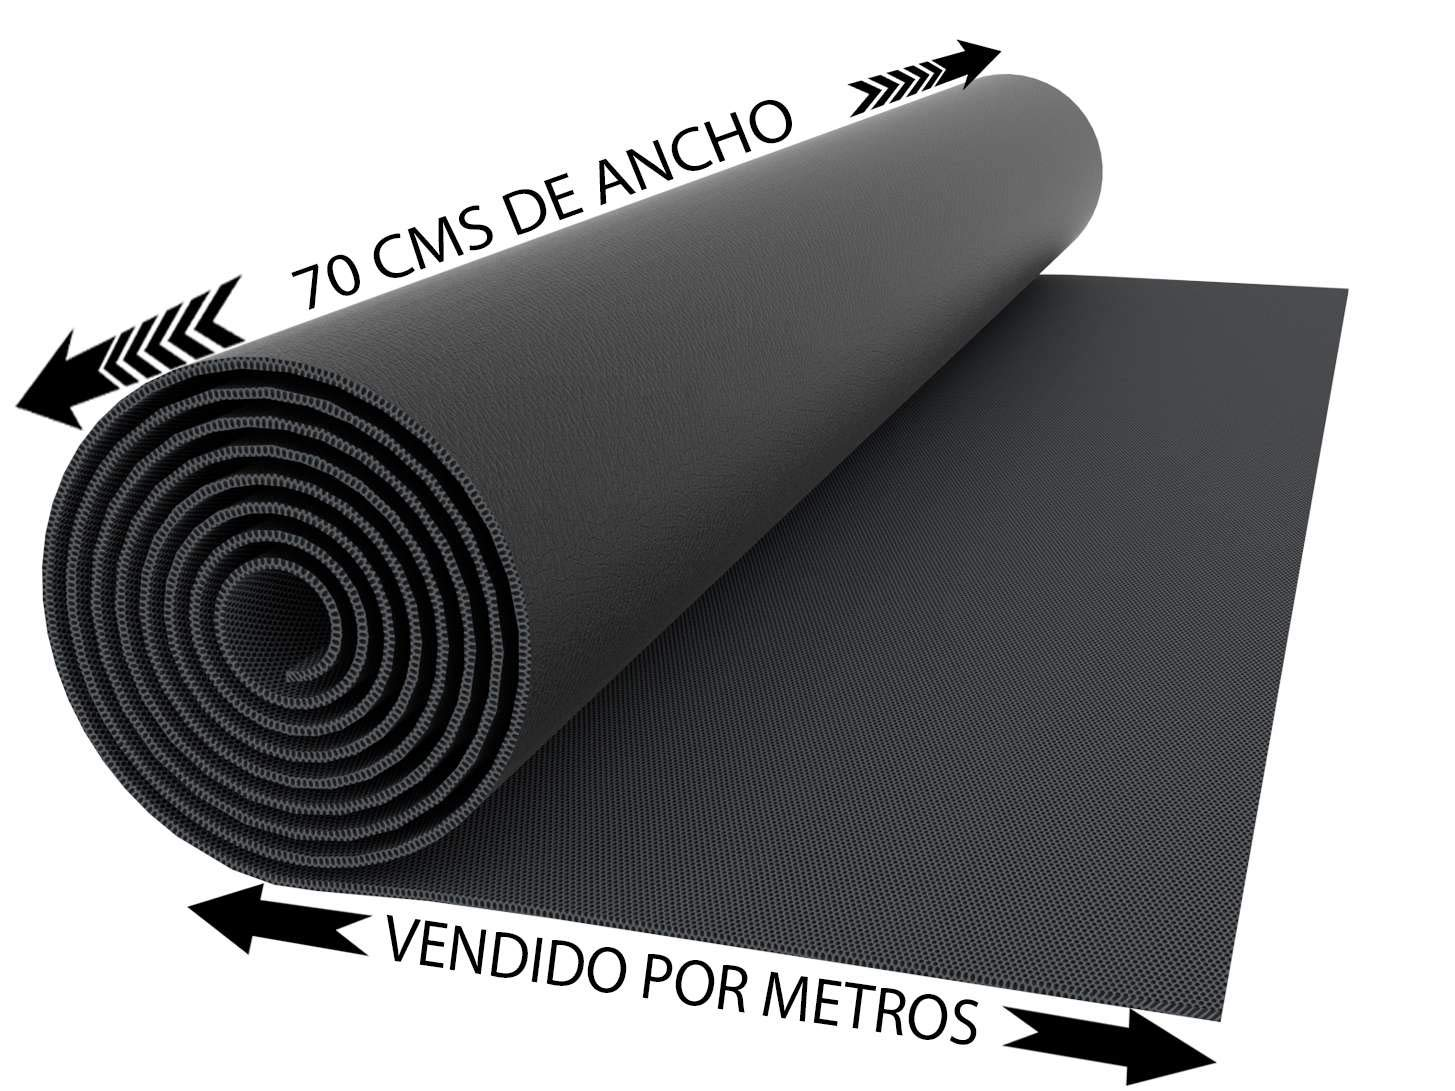 LA WEB DEL COLCHON Polipiel para tapizar 1 ML. Polipiel (Ancho 70 cms.) Color Chocolate: Amazon.es: Hogar